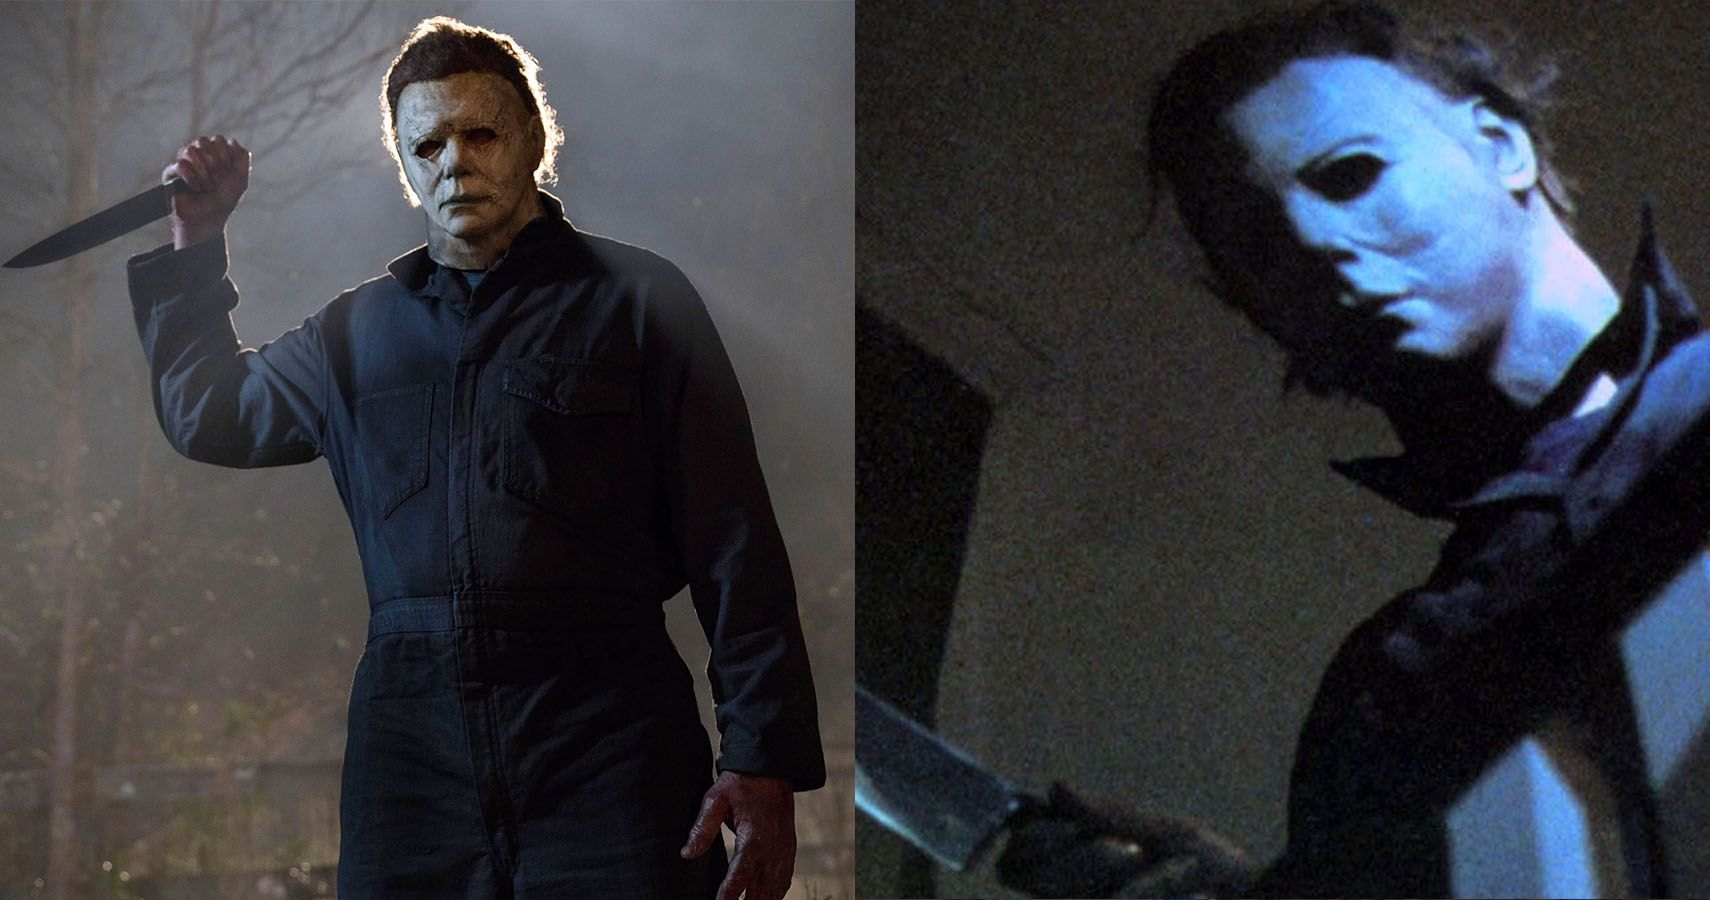 Halloween 2018: Every Reference And Connection To The Original Film